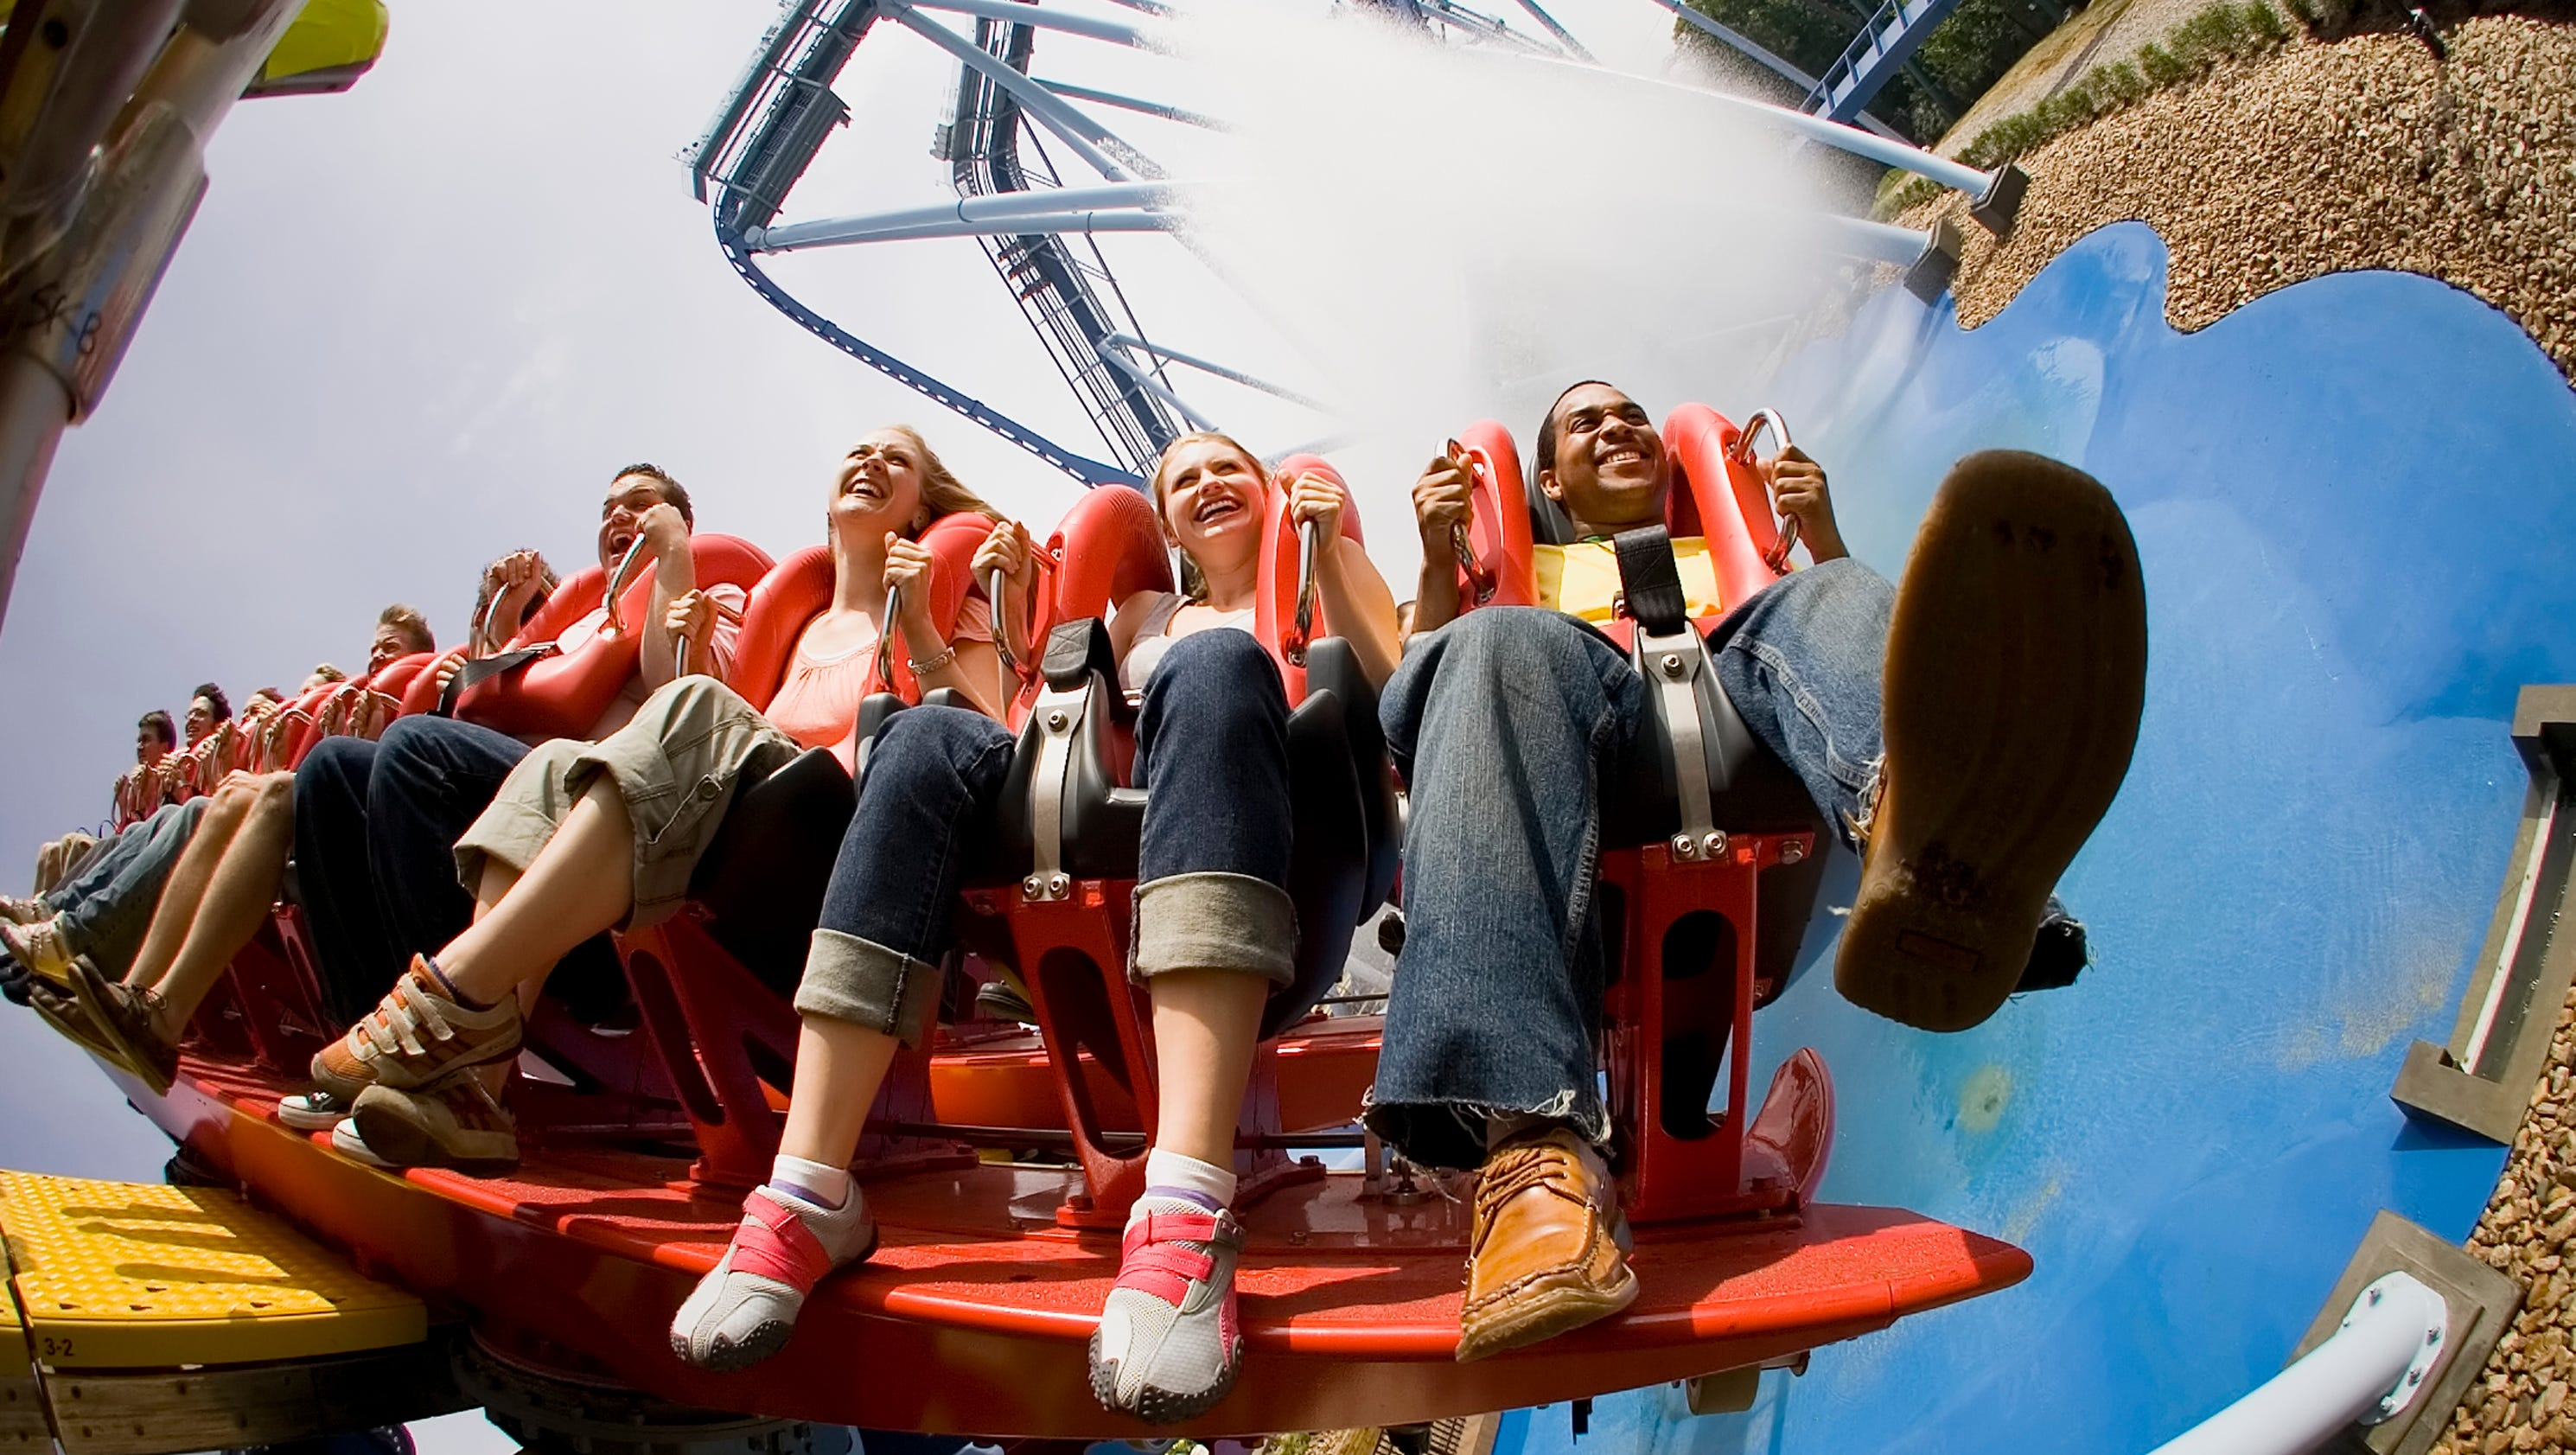 20 Most Visited Theme Parks In 2015